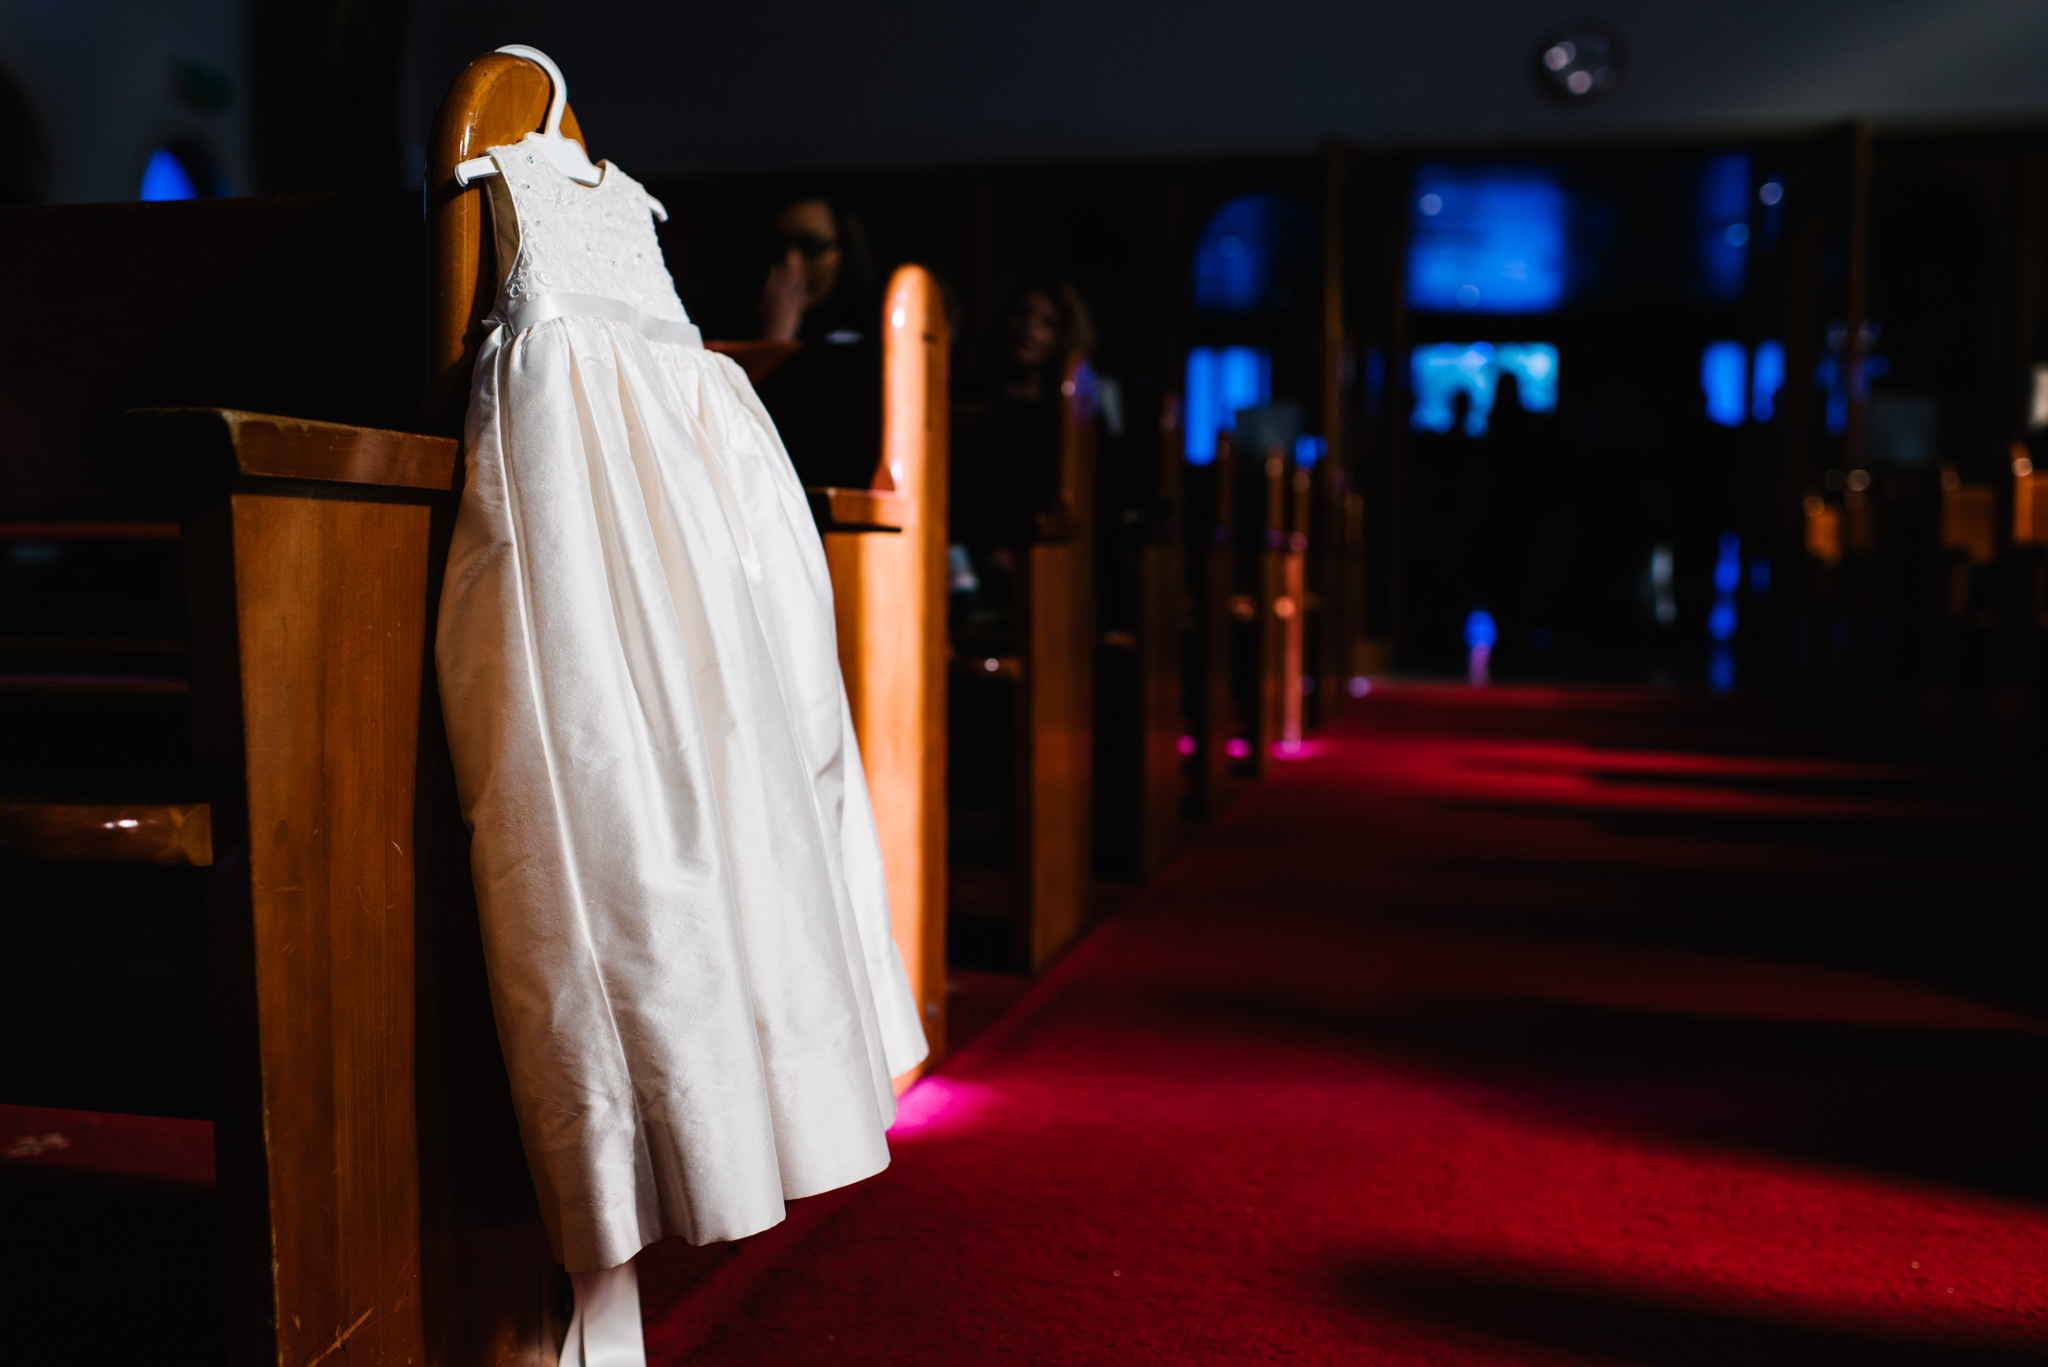 Christening gown at Greek Orthodox Church, Leichhardt